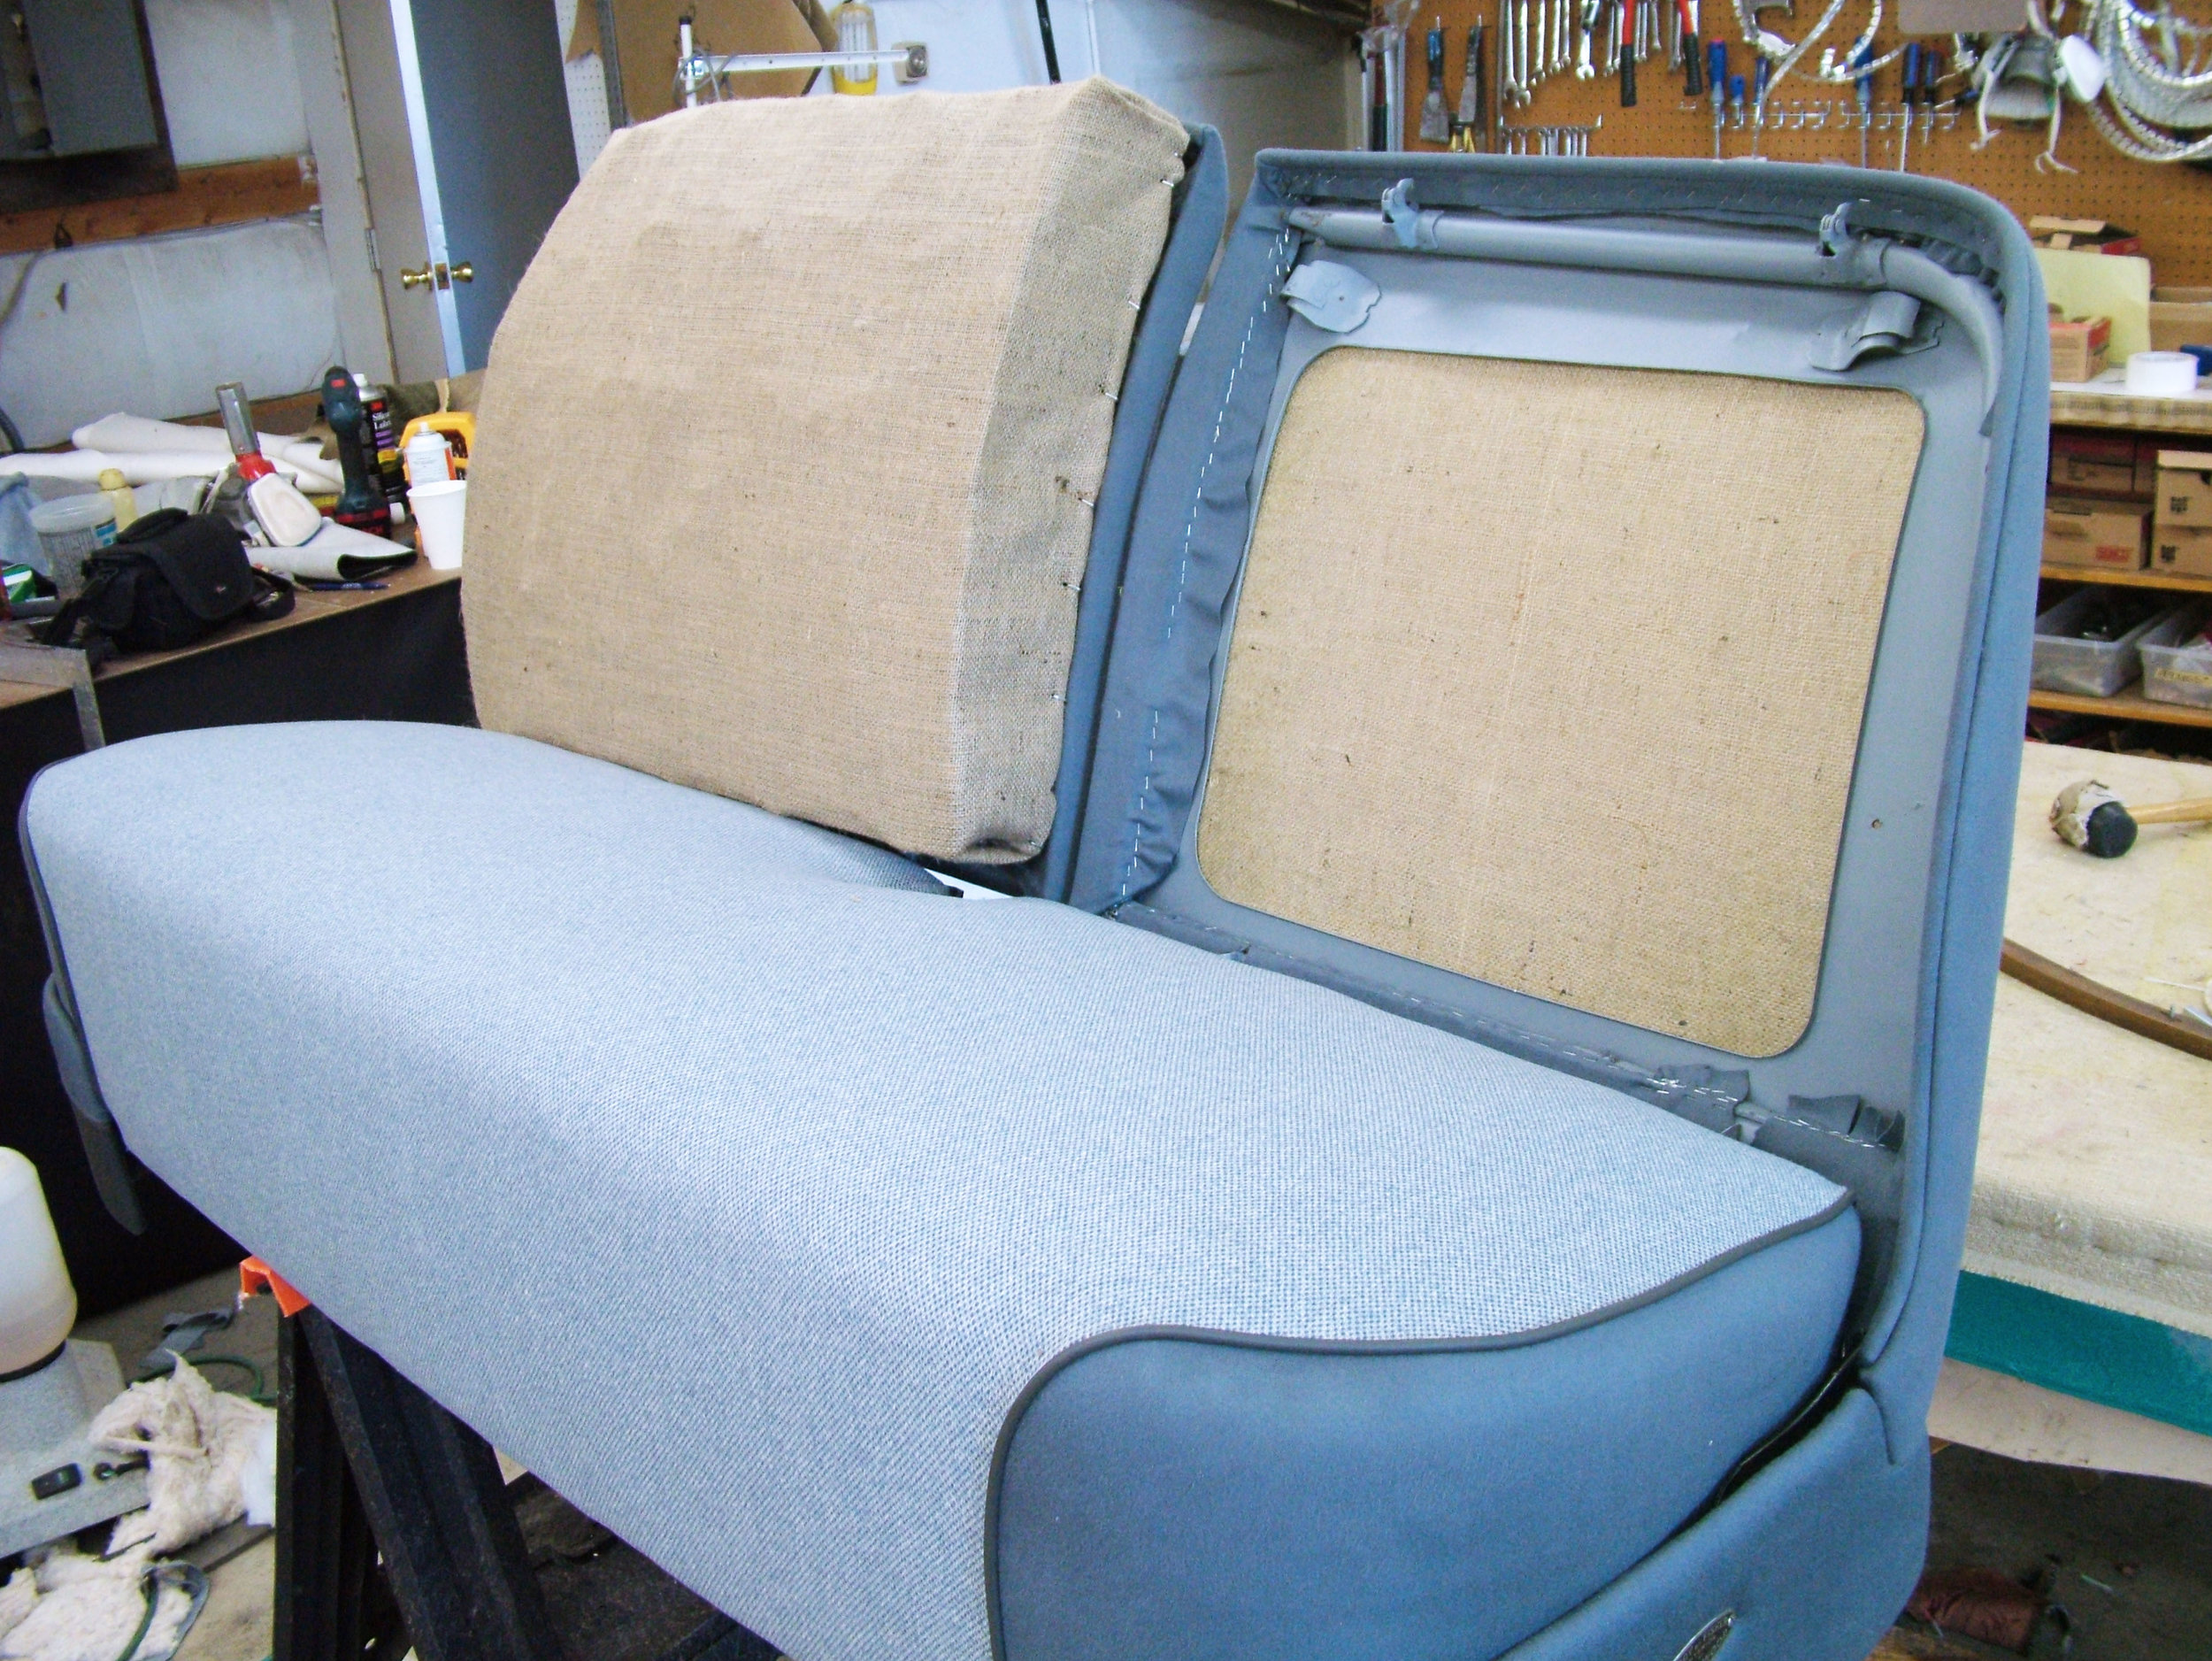 Cadillac - Restoration interior- Foam seat repair.